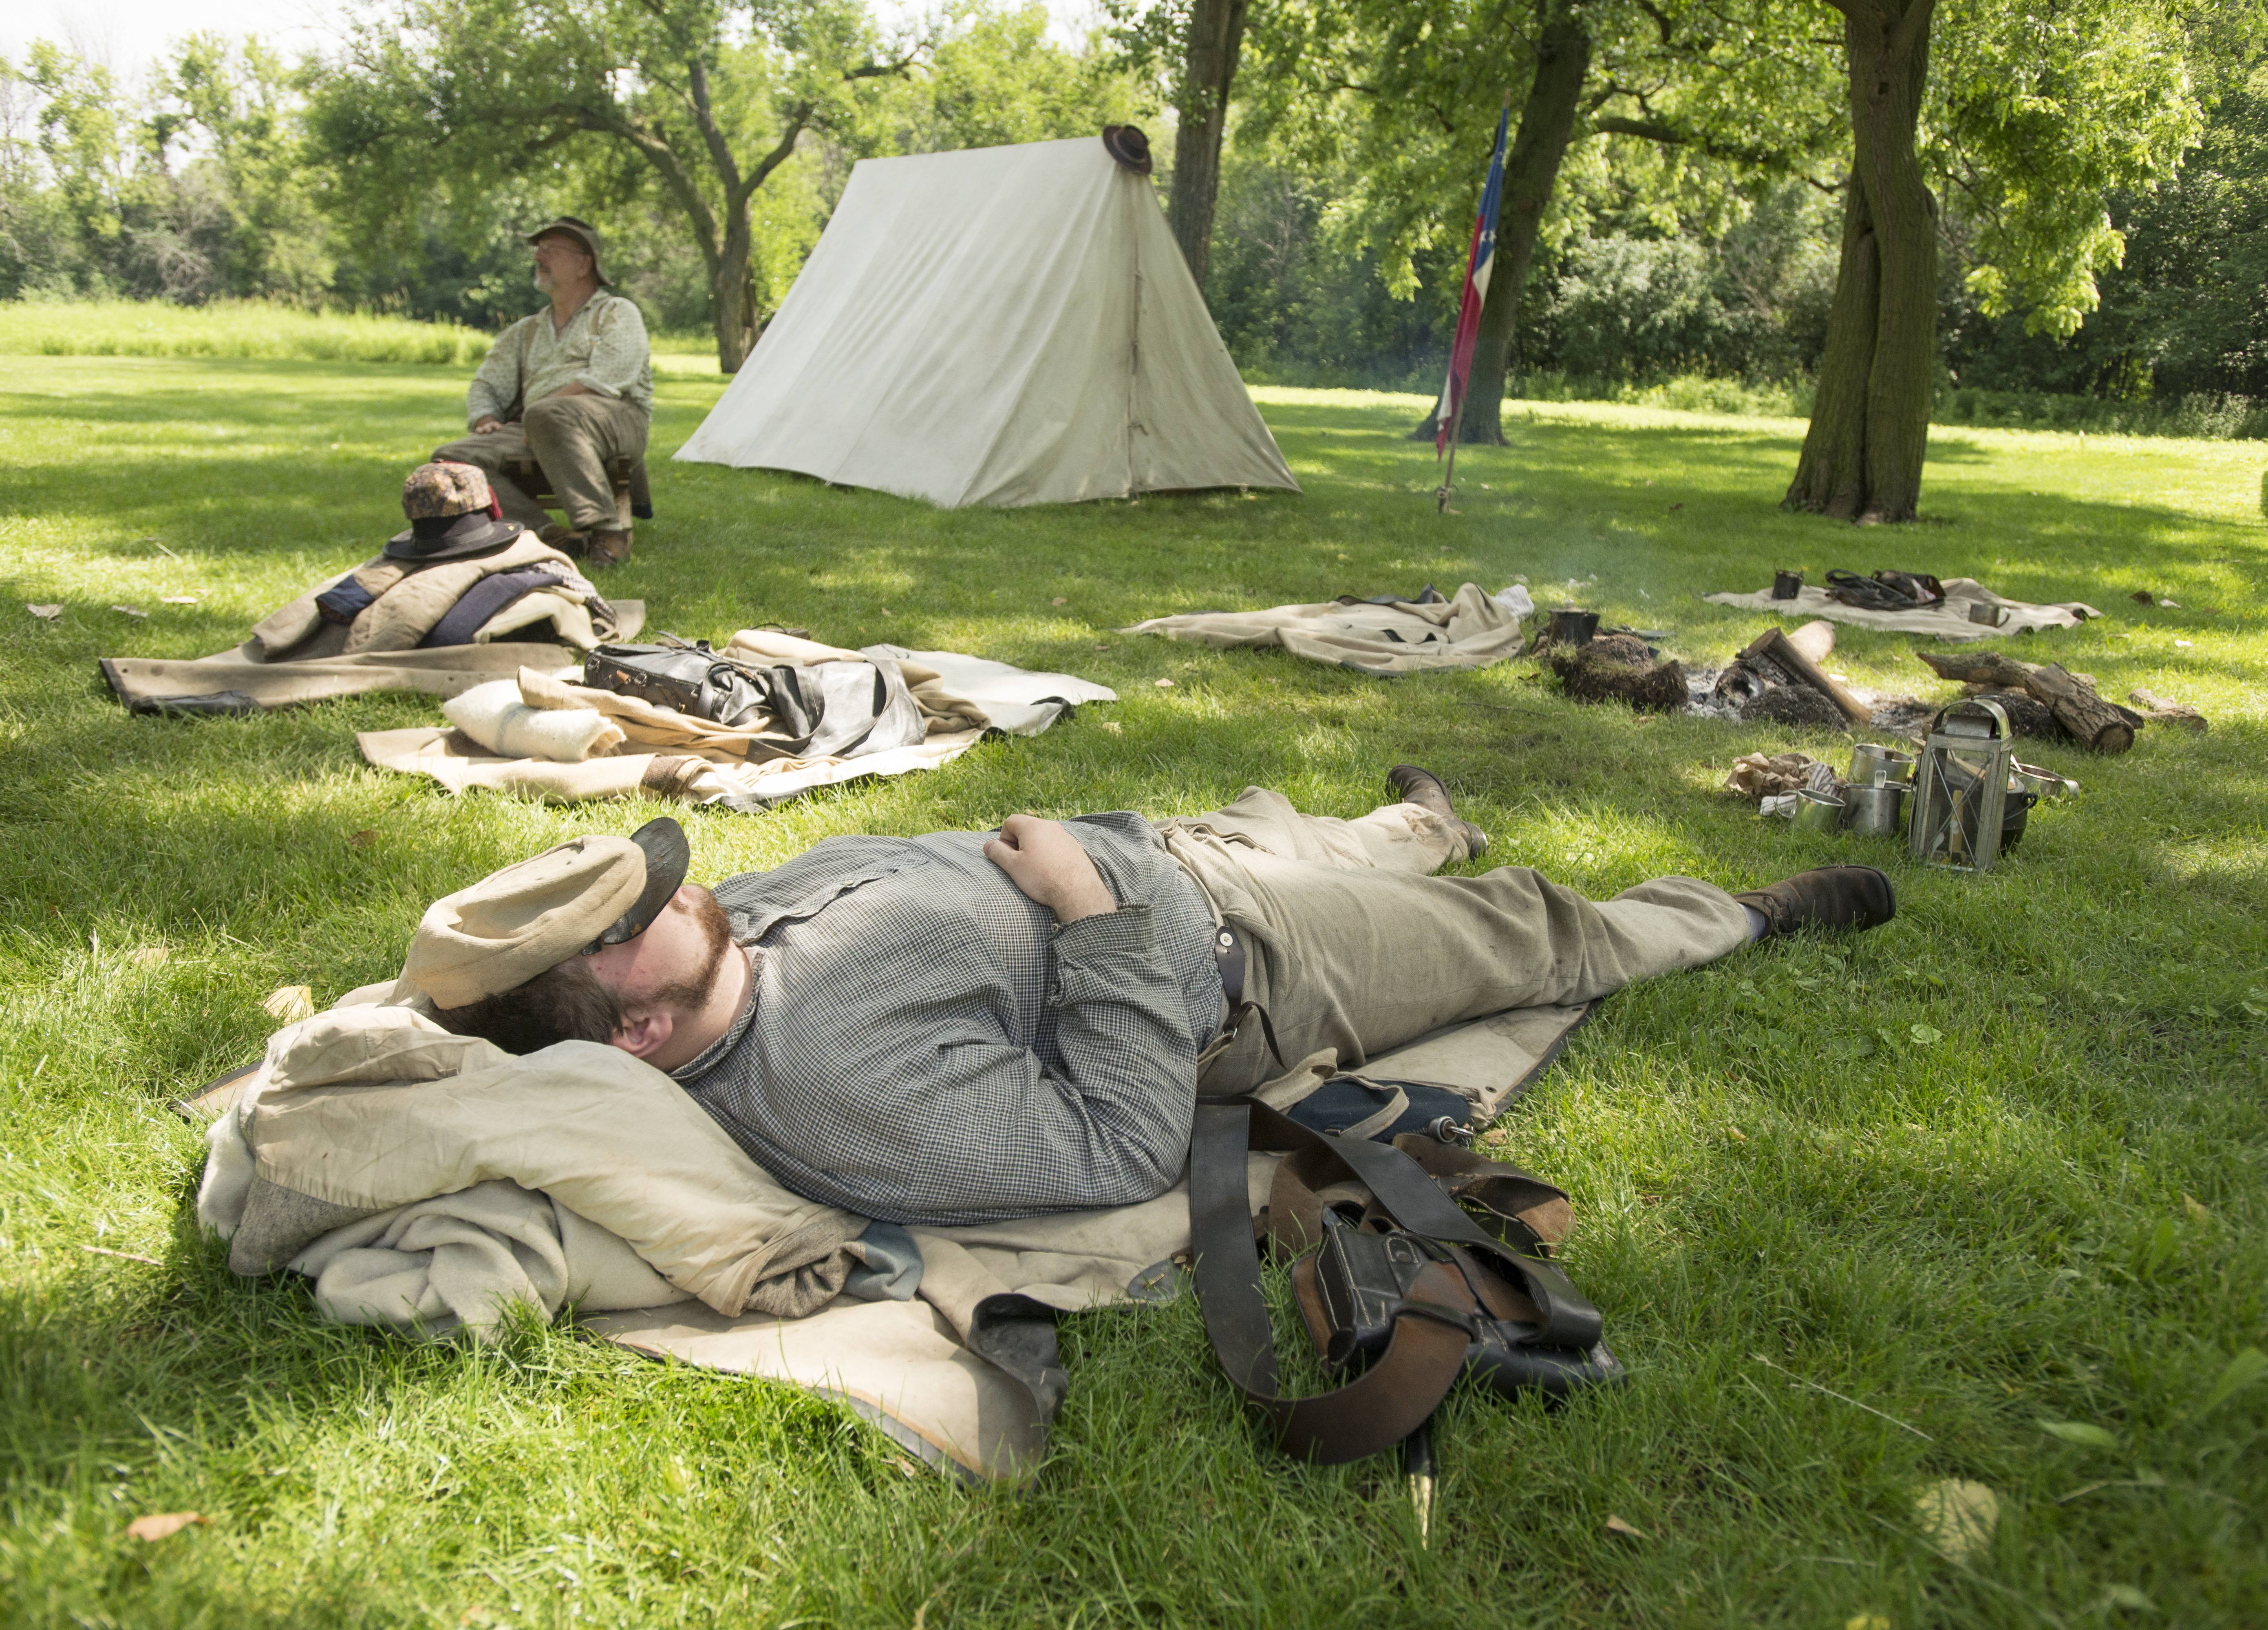 Jordan Smith of Sycamore, a Civil War re-enactor and member of Austin's Battalion Louisiana Sharp Shooters, rests while portraying camp life Sunday during a Civil War re-enactment at Fischer Farm in Bensenville. This was the second year the farm has hosted a Civil War Days event.